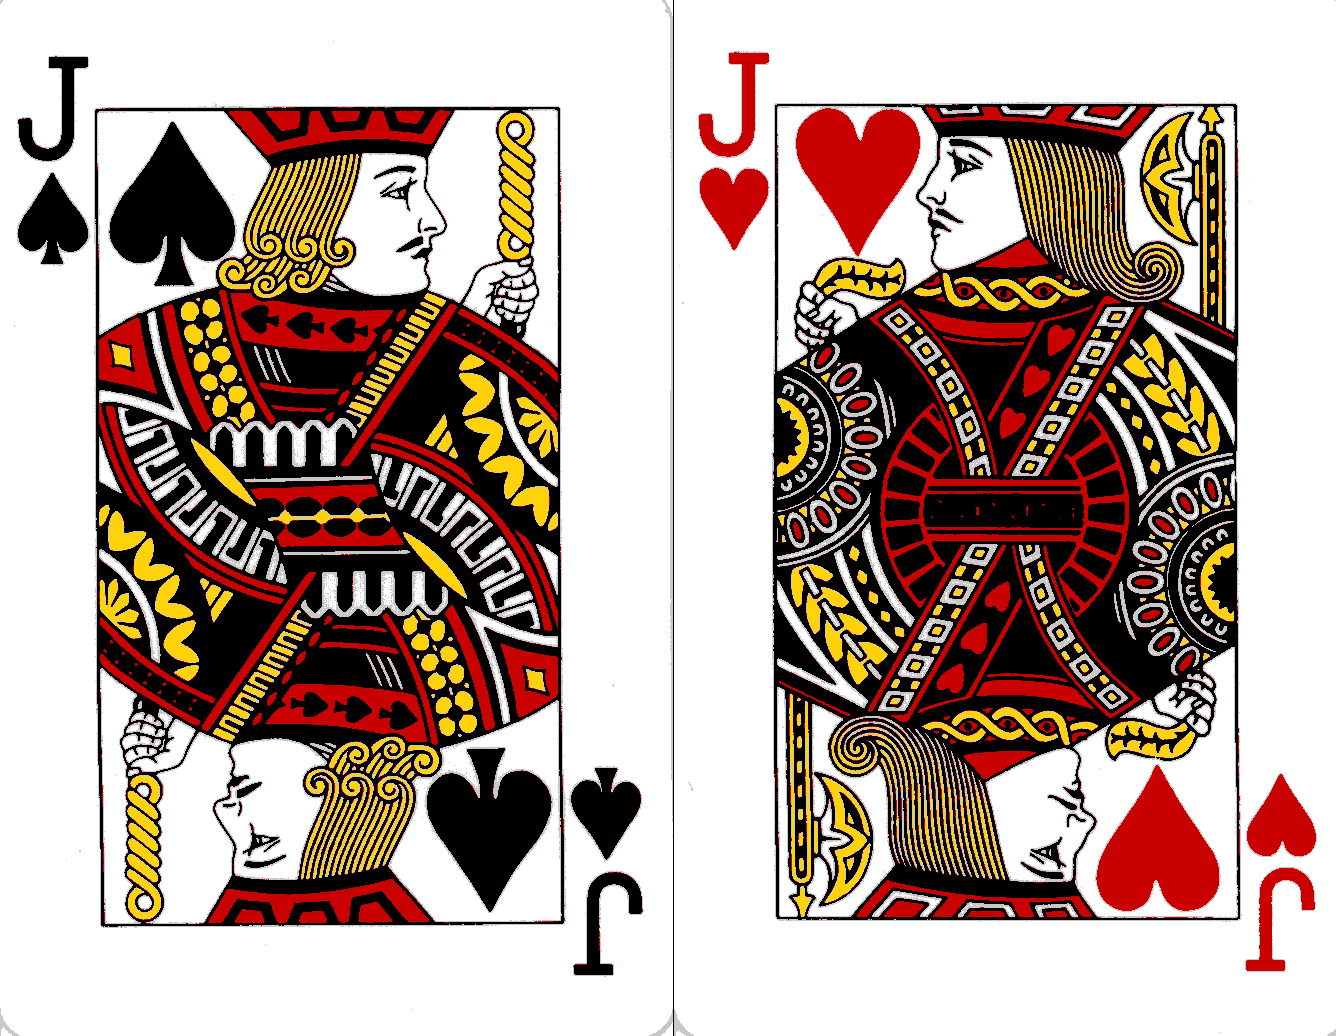 Pair of one-eyed jacks